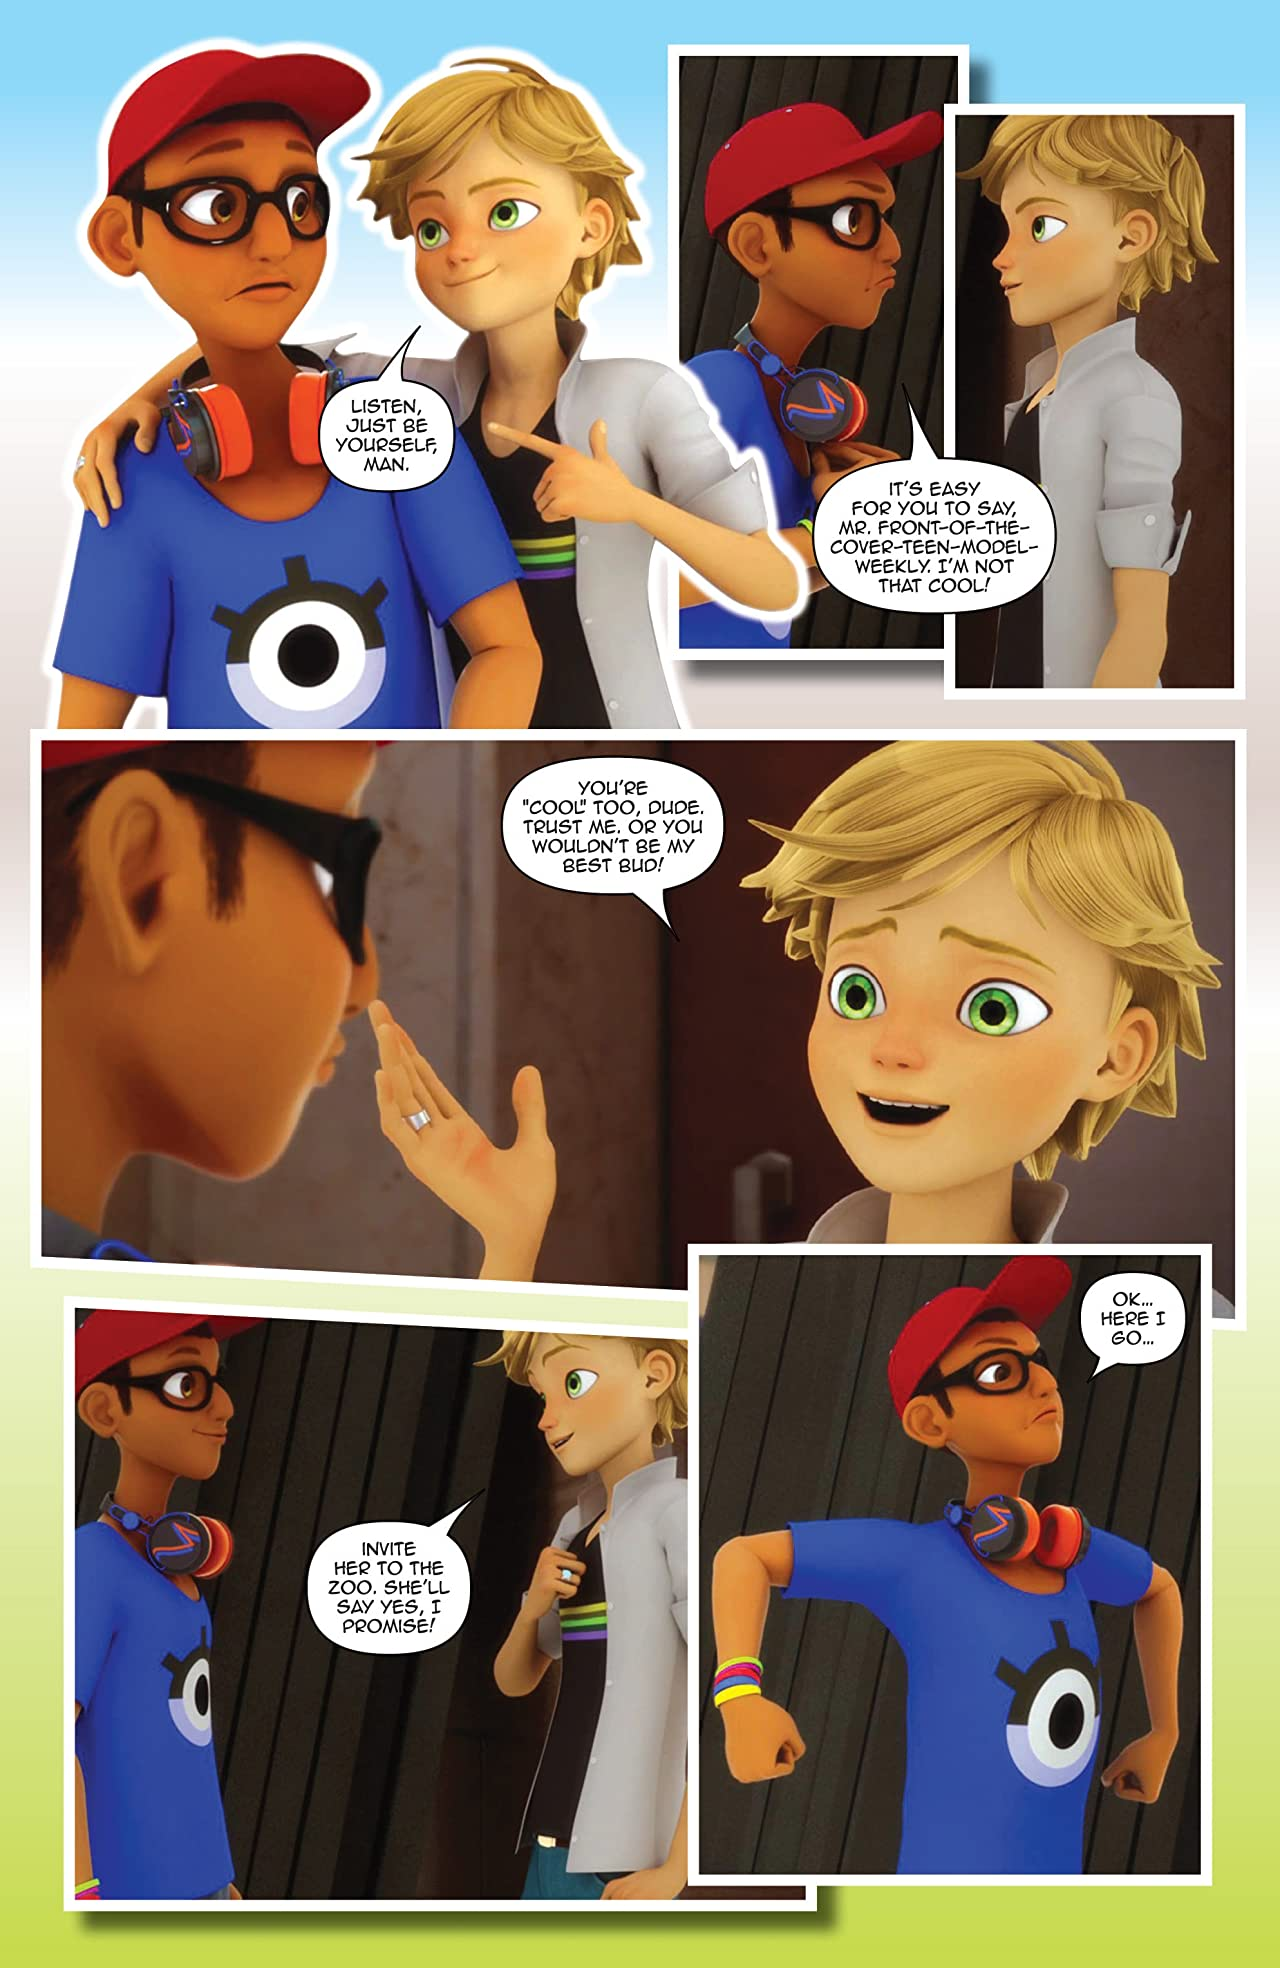 Miraculous: Tales of Ladybug and Cat Noir #15